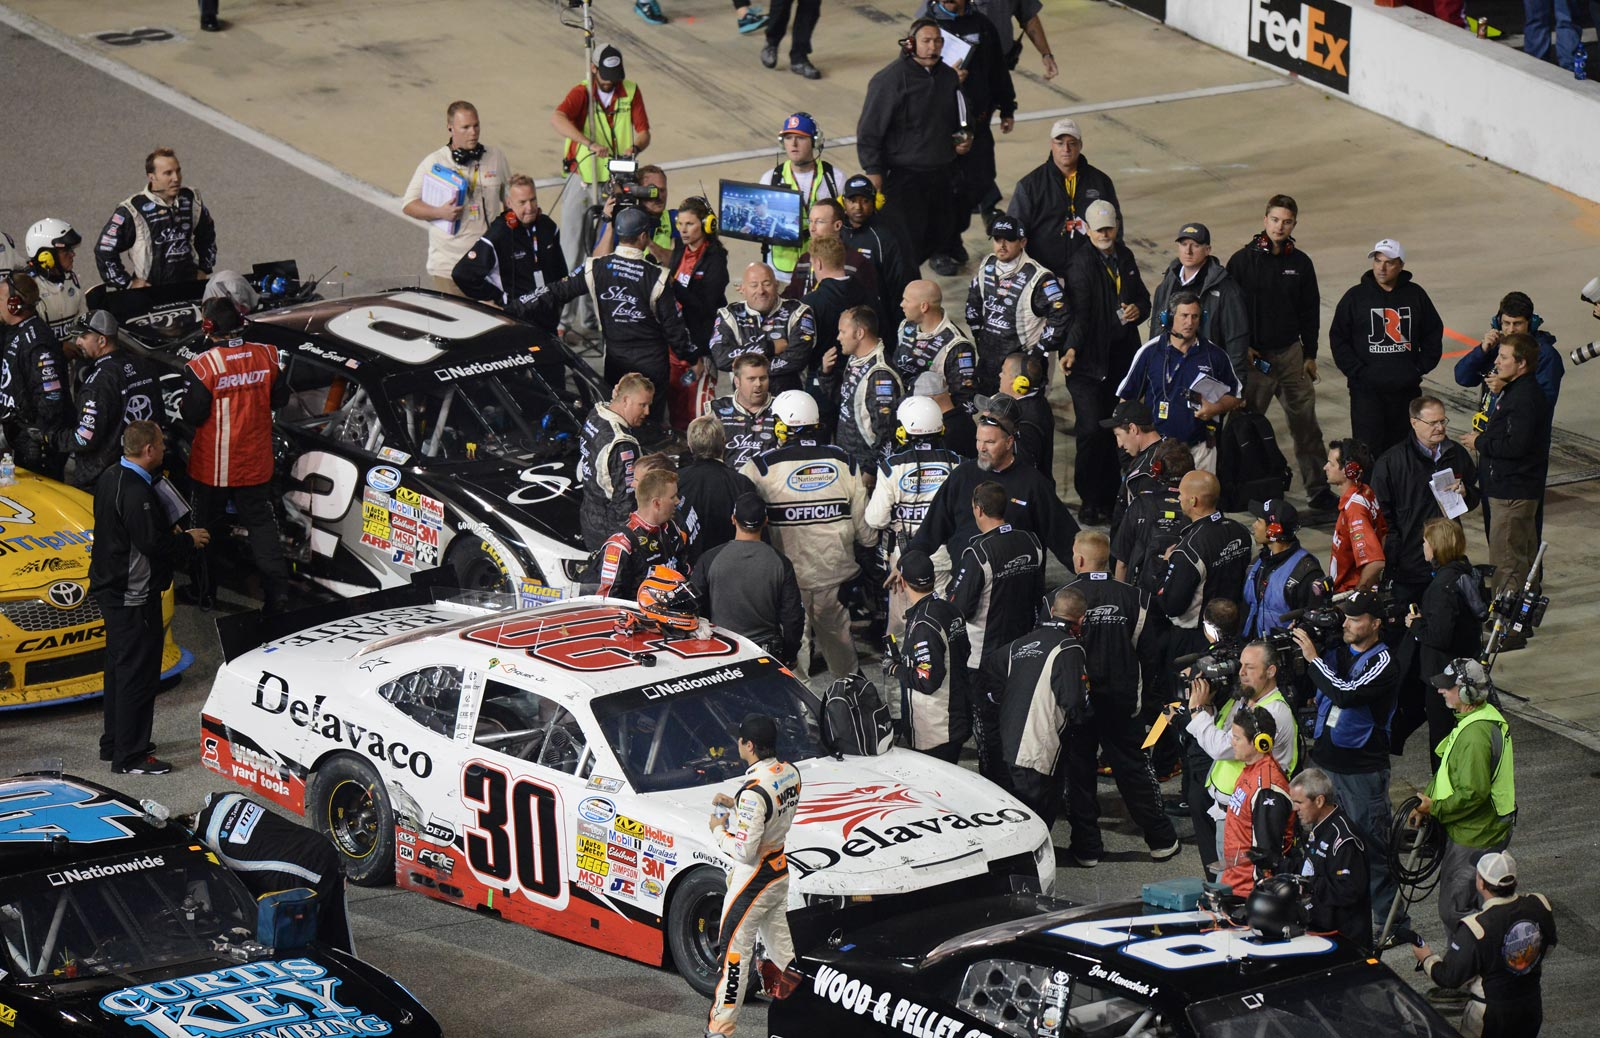 Nelson-Piquet-Brian-Scott-Post-Race-NASCAR-Nationwide-2013-Richmond-1-Friday